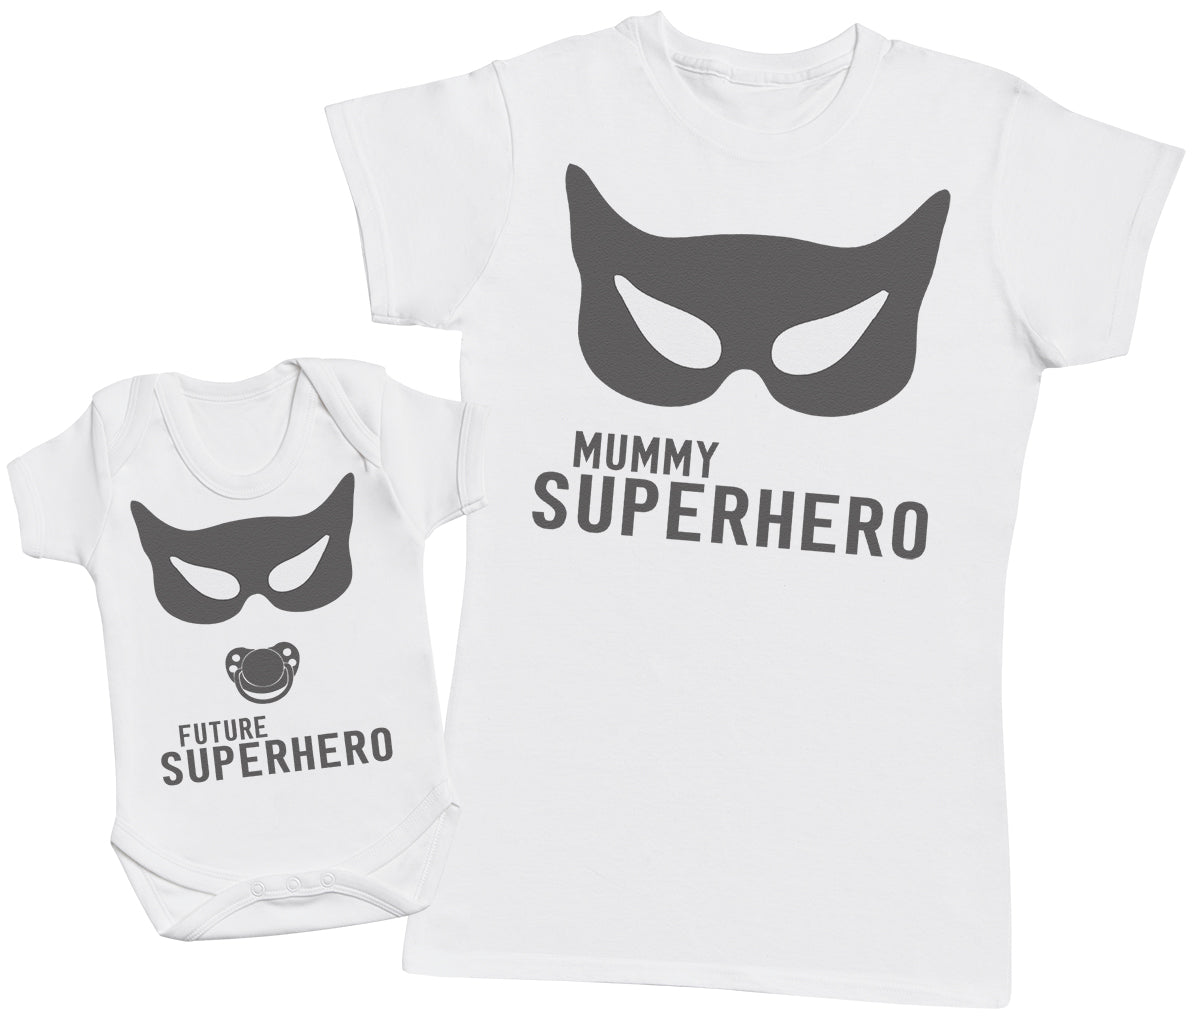 SuperHero Mum- Mothers T-Shirt & Baby Bodysuit